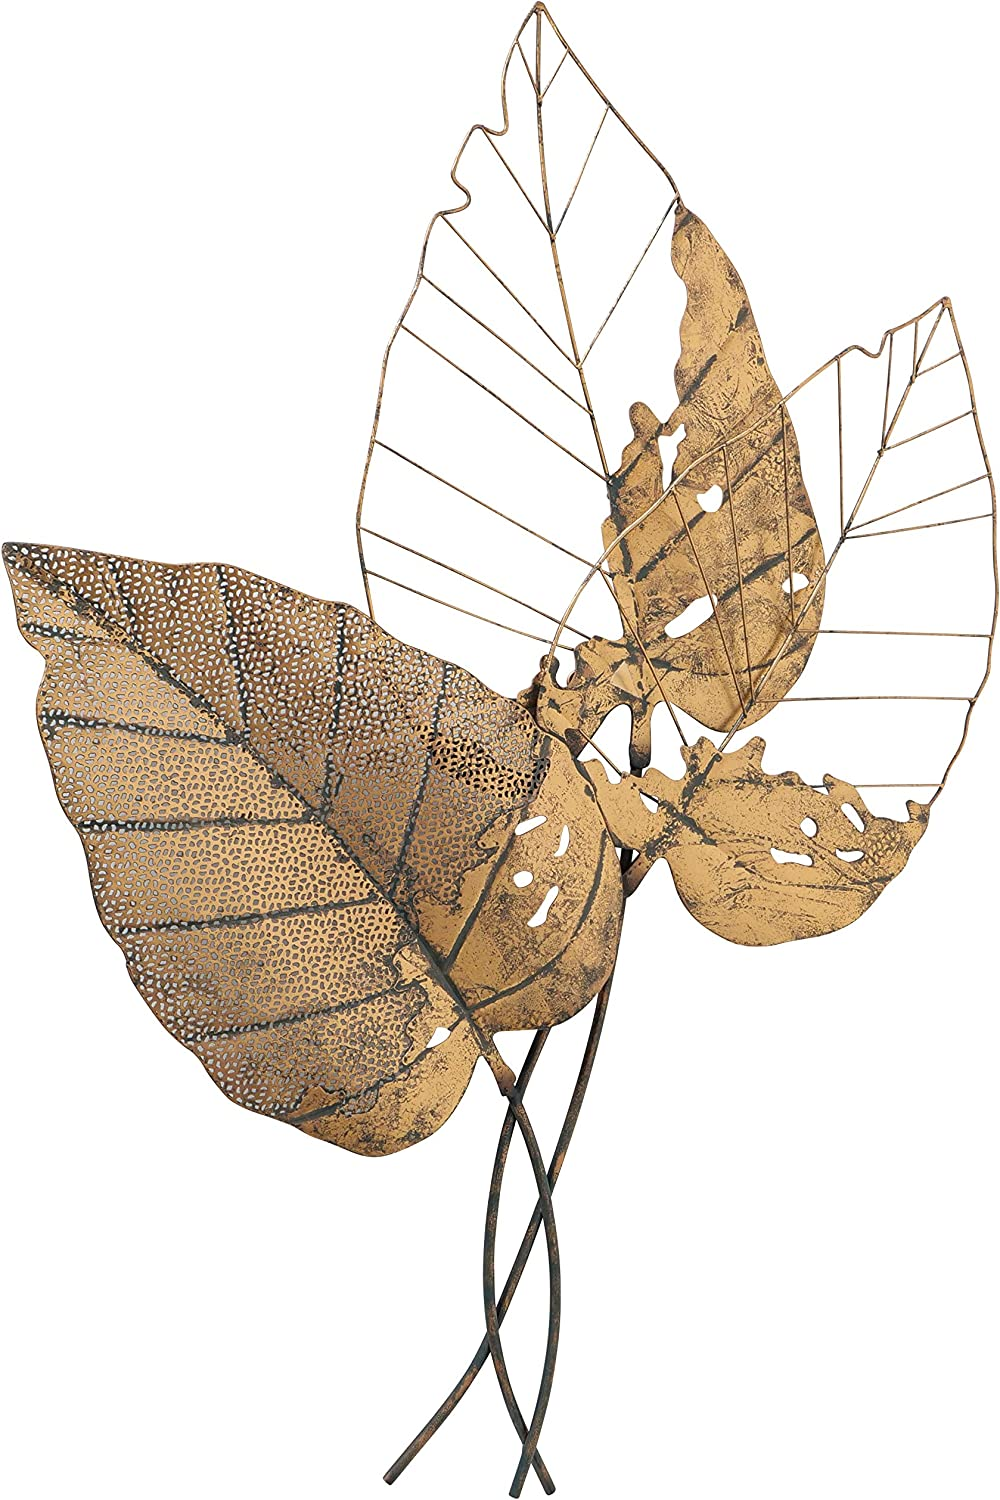 WHW Whole Super intense SALE Max 78% OFF House Worlds Oversized Wall Art Sculpture Antiqu Leaf